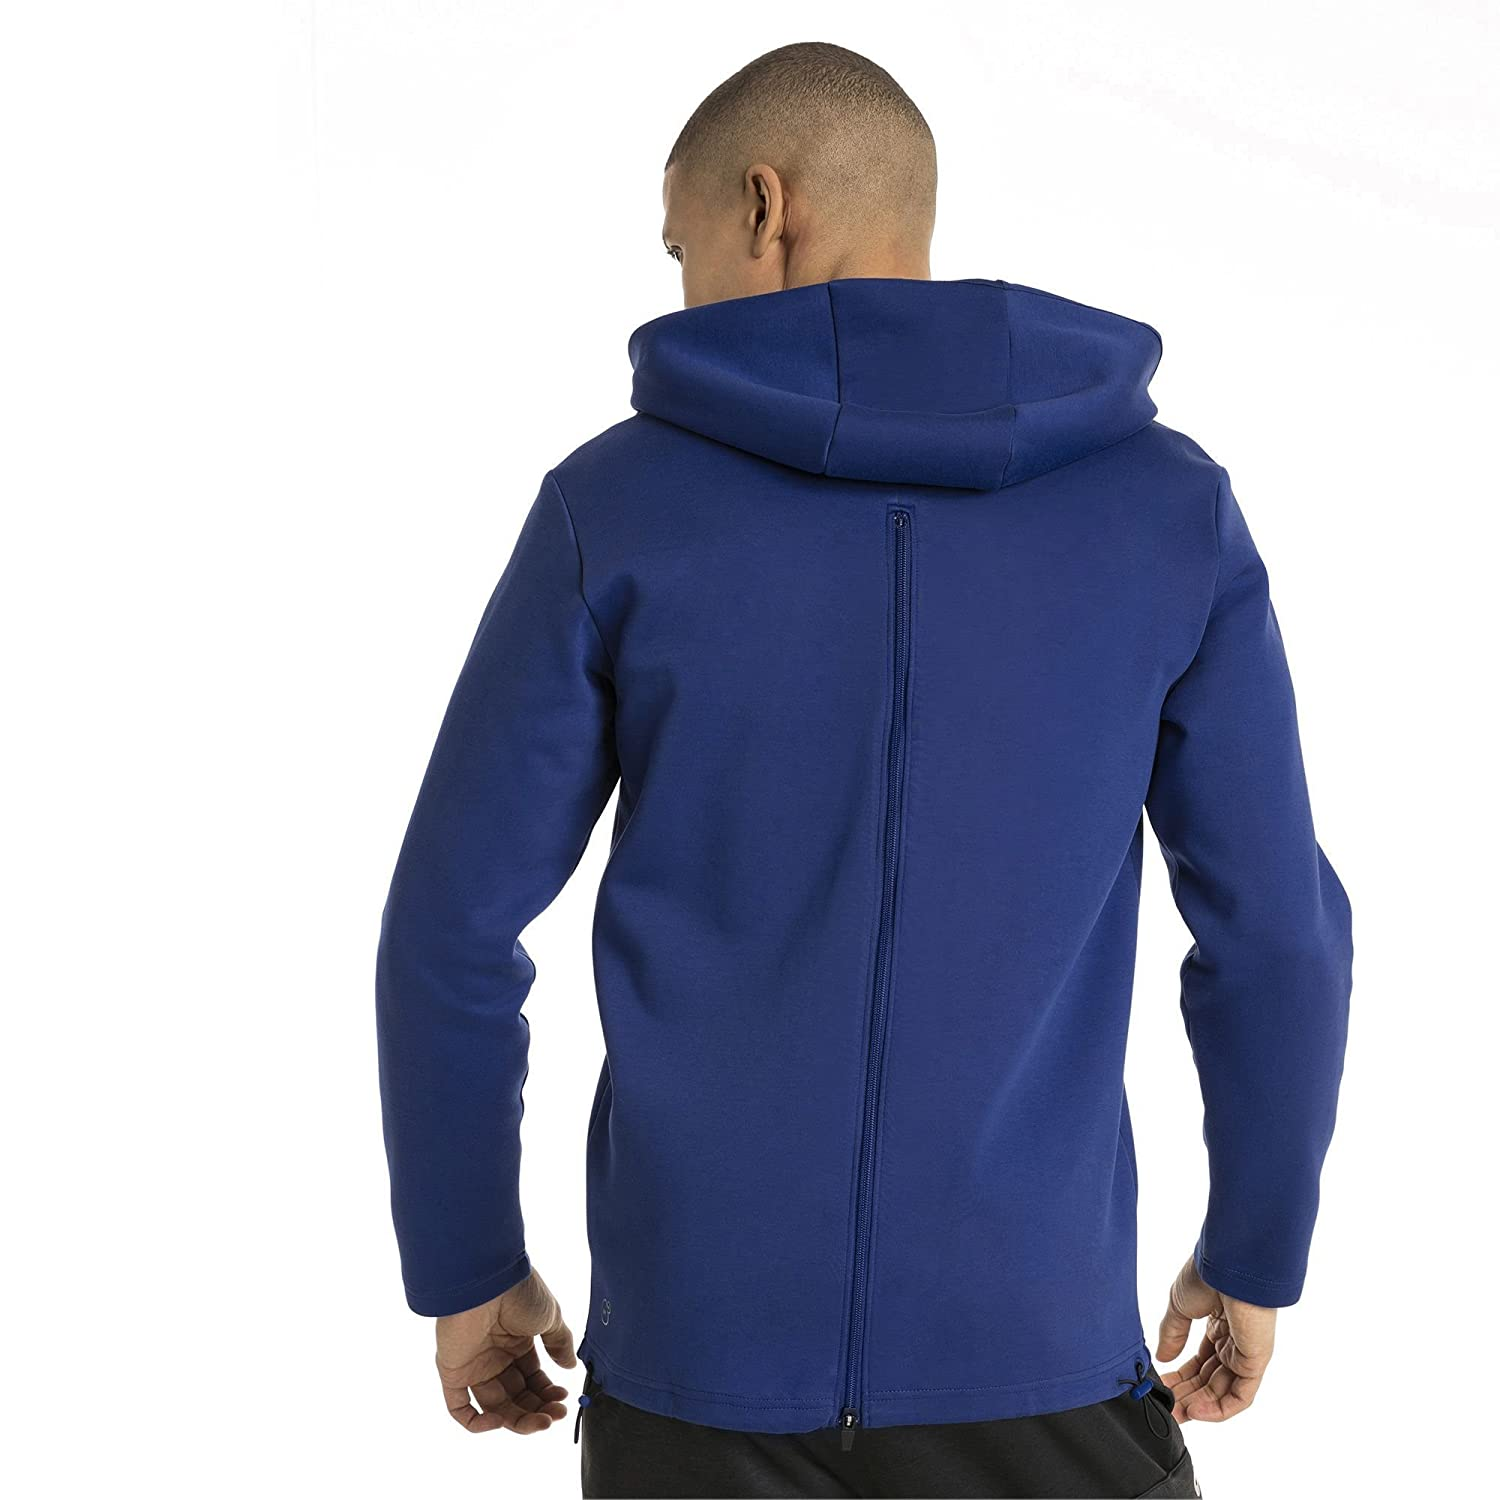 c58a6248d7 Puma Q4 Vent Hooded Jacket Sodalite Blue: Amazon.in: Clothing ...